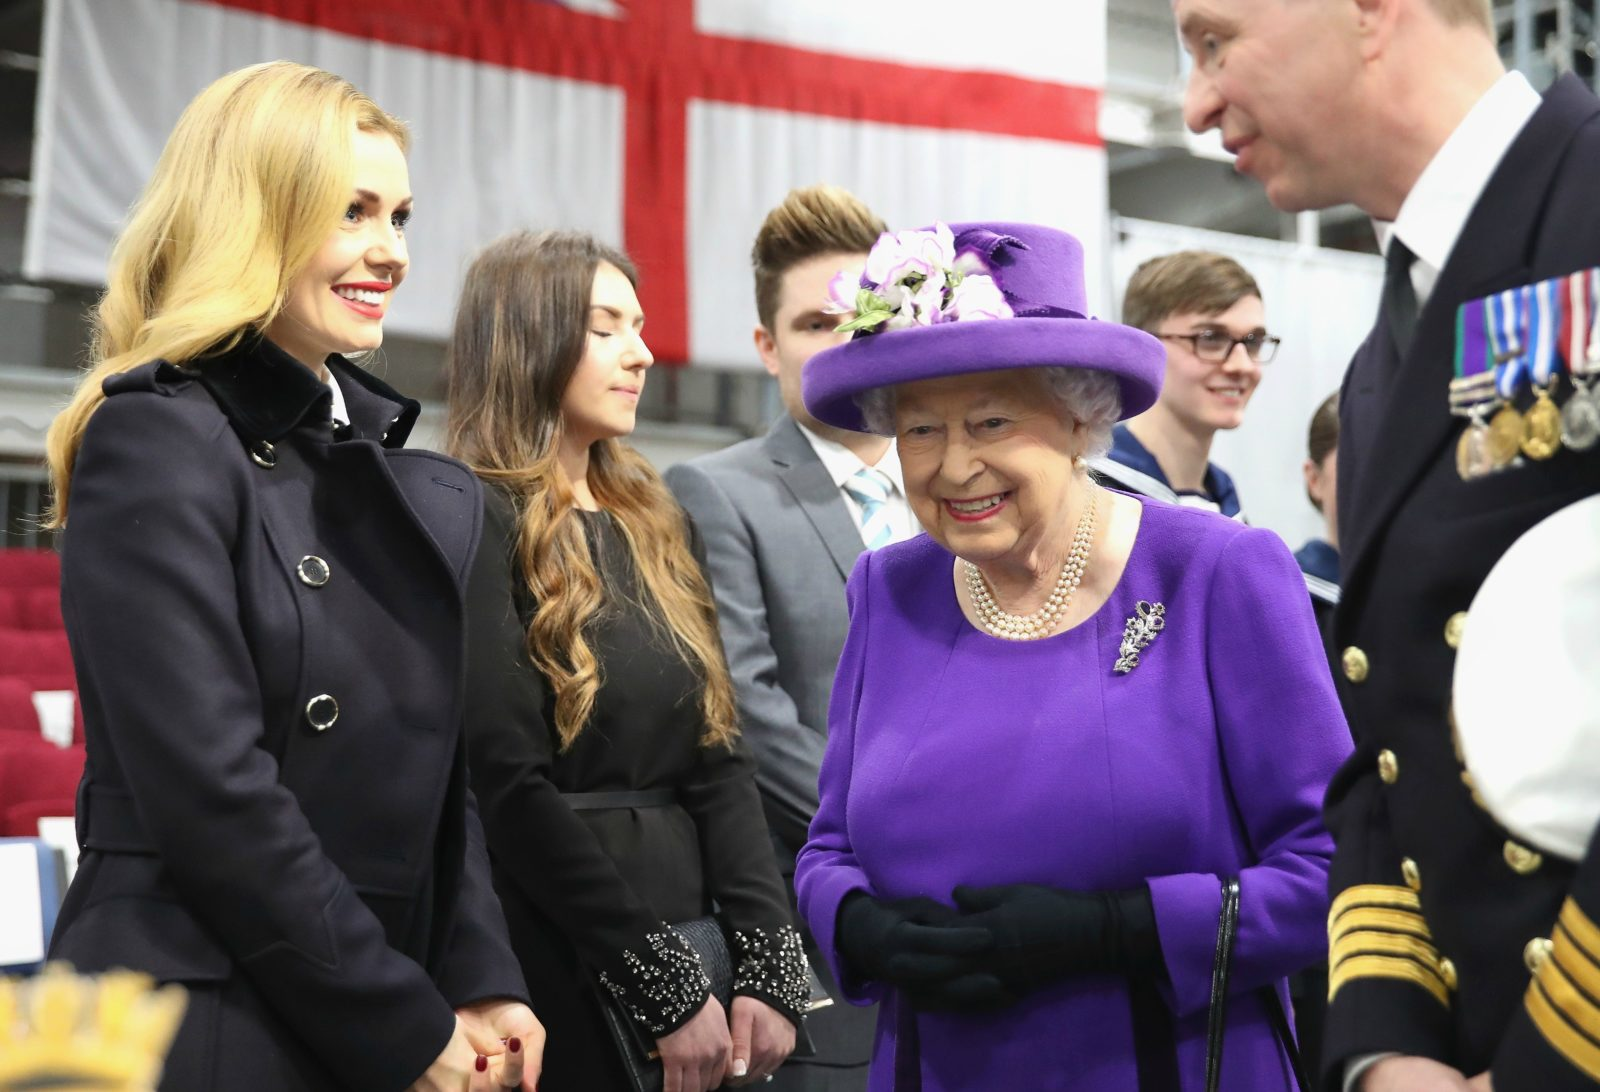 Katherine with the Queen and William at the Commissioning Ceremony of HMS Queen Elizabeth on December 7, 2017. Source: Getty.